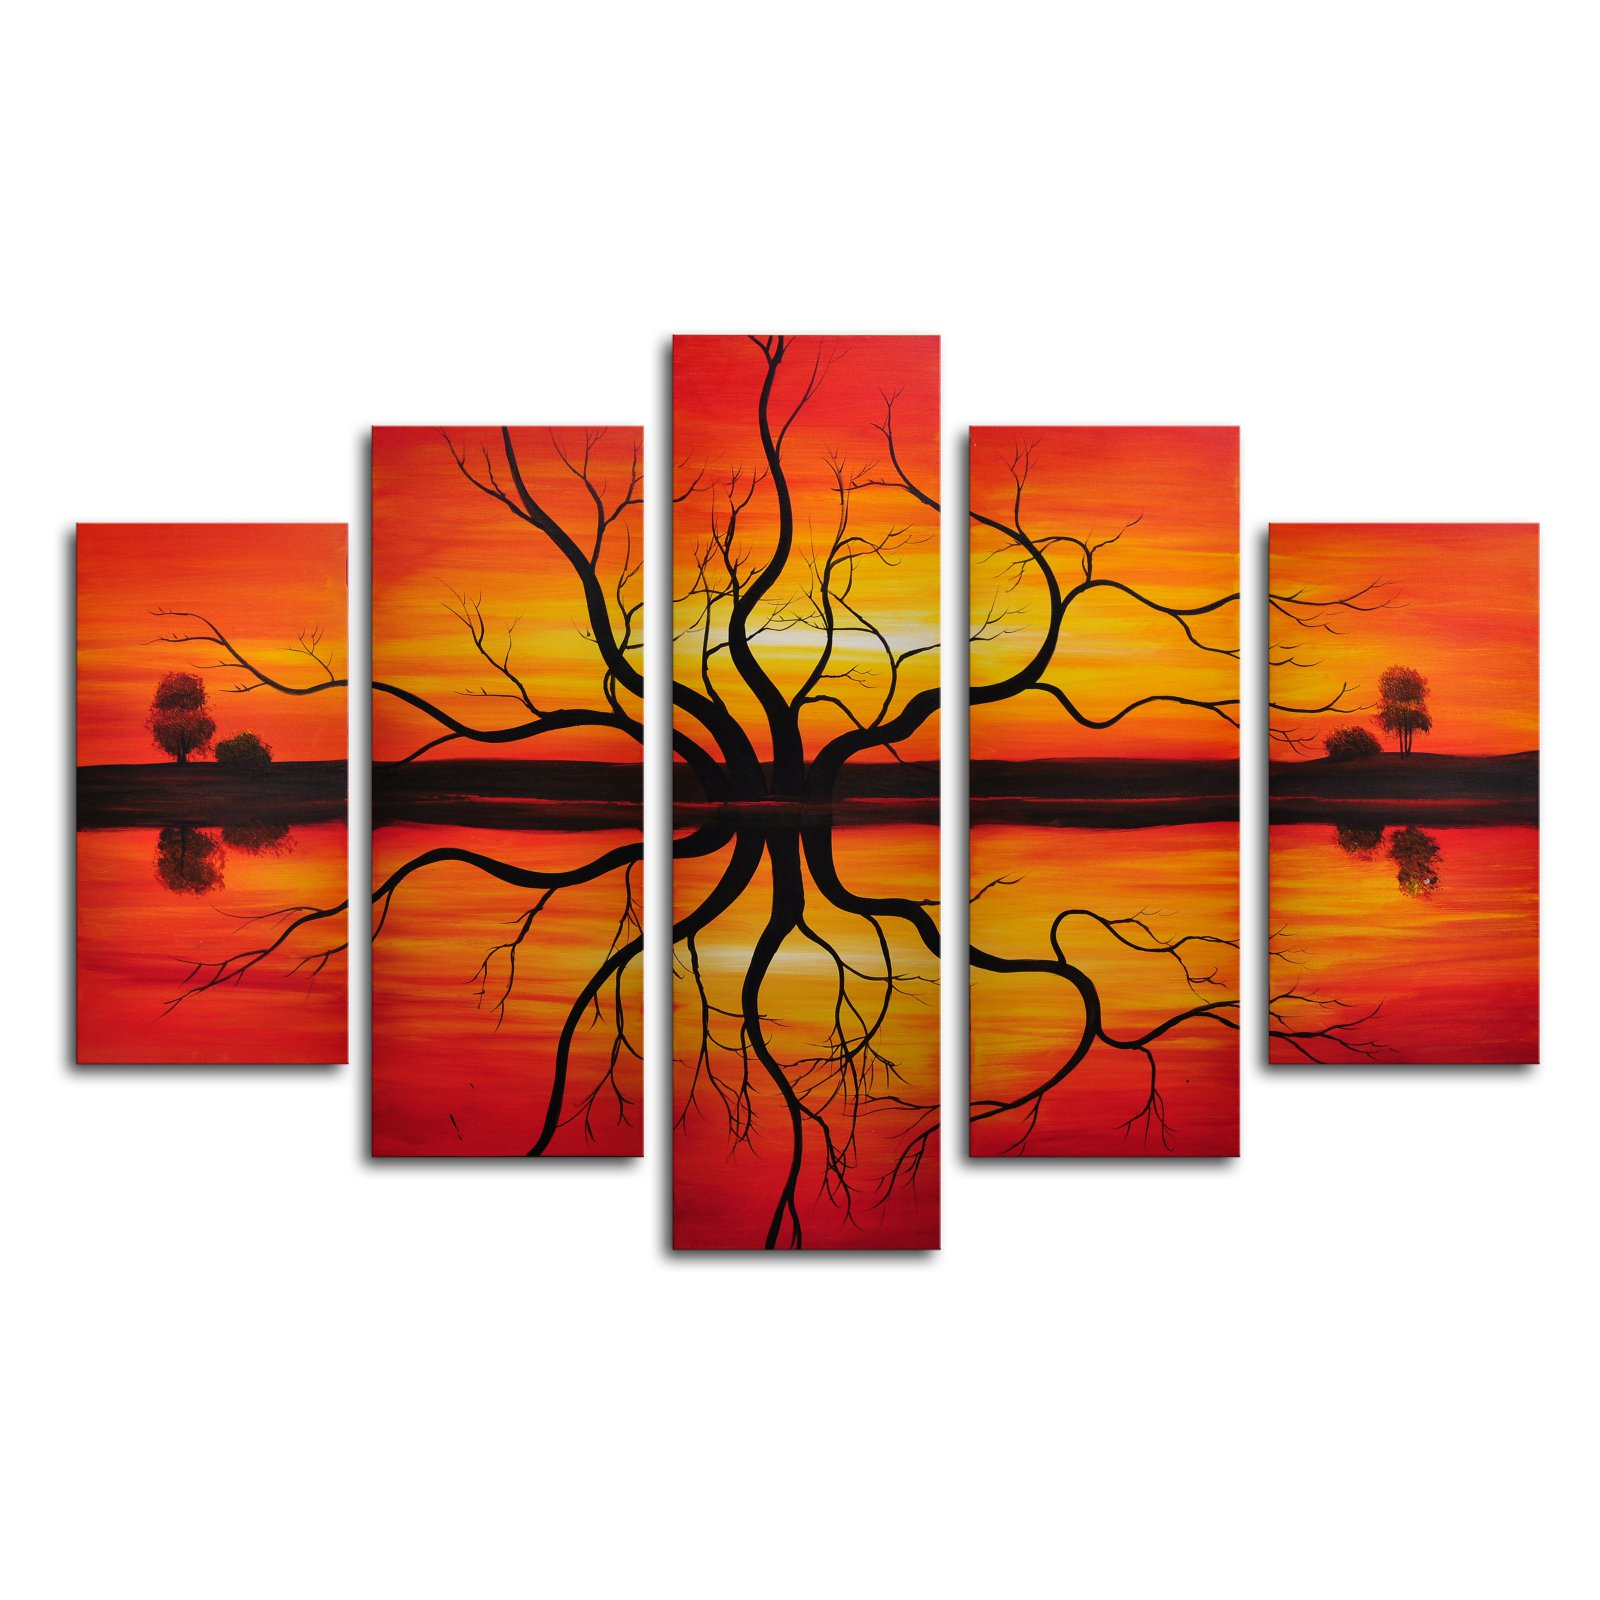 Sunset Reflection 5-Piece Canvas Wall Art - 60W x 40H in.